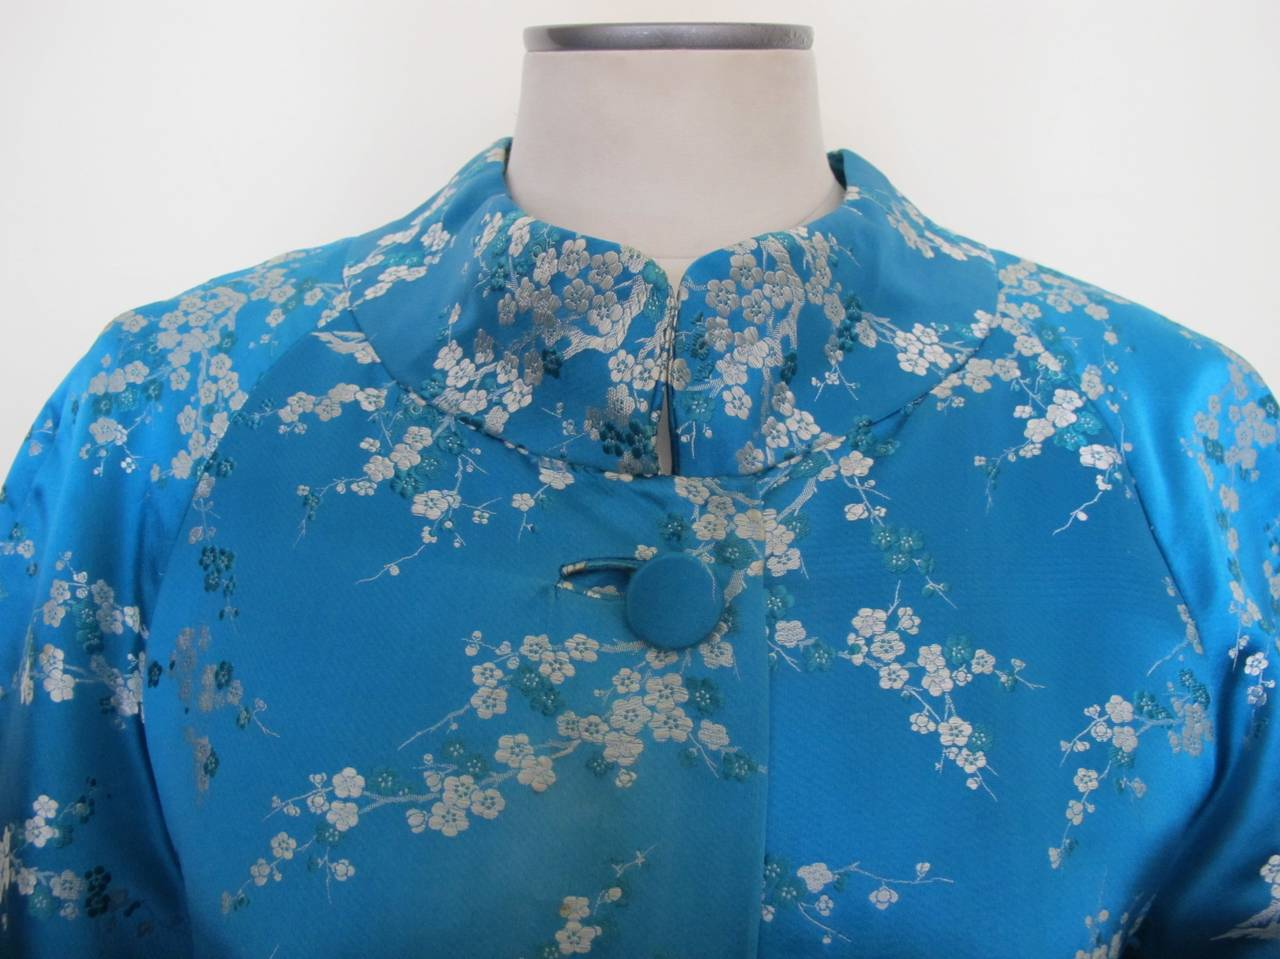 1945 Family Japanese Heirloom Turquoise Blue Robe 5